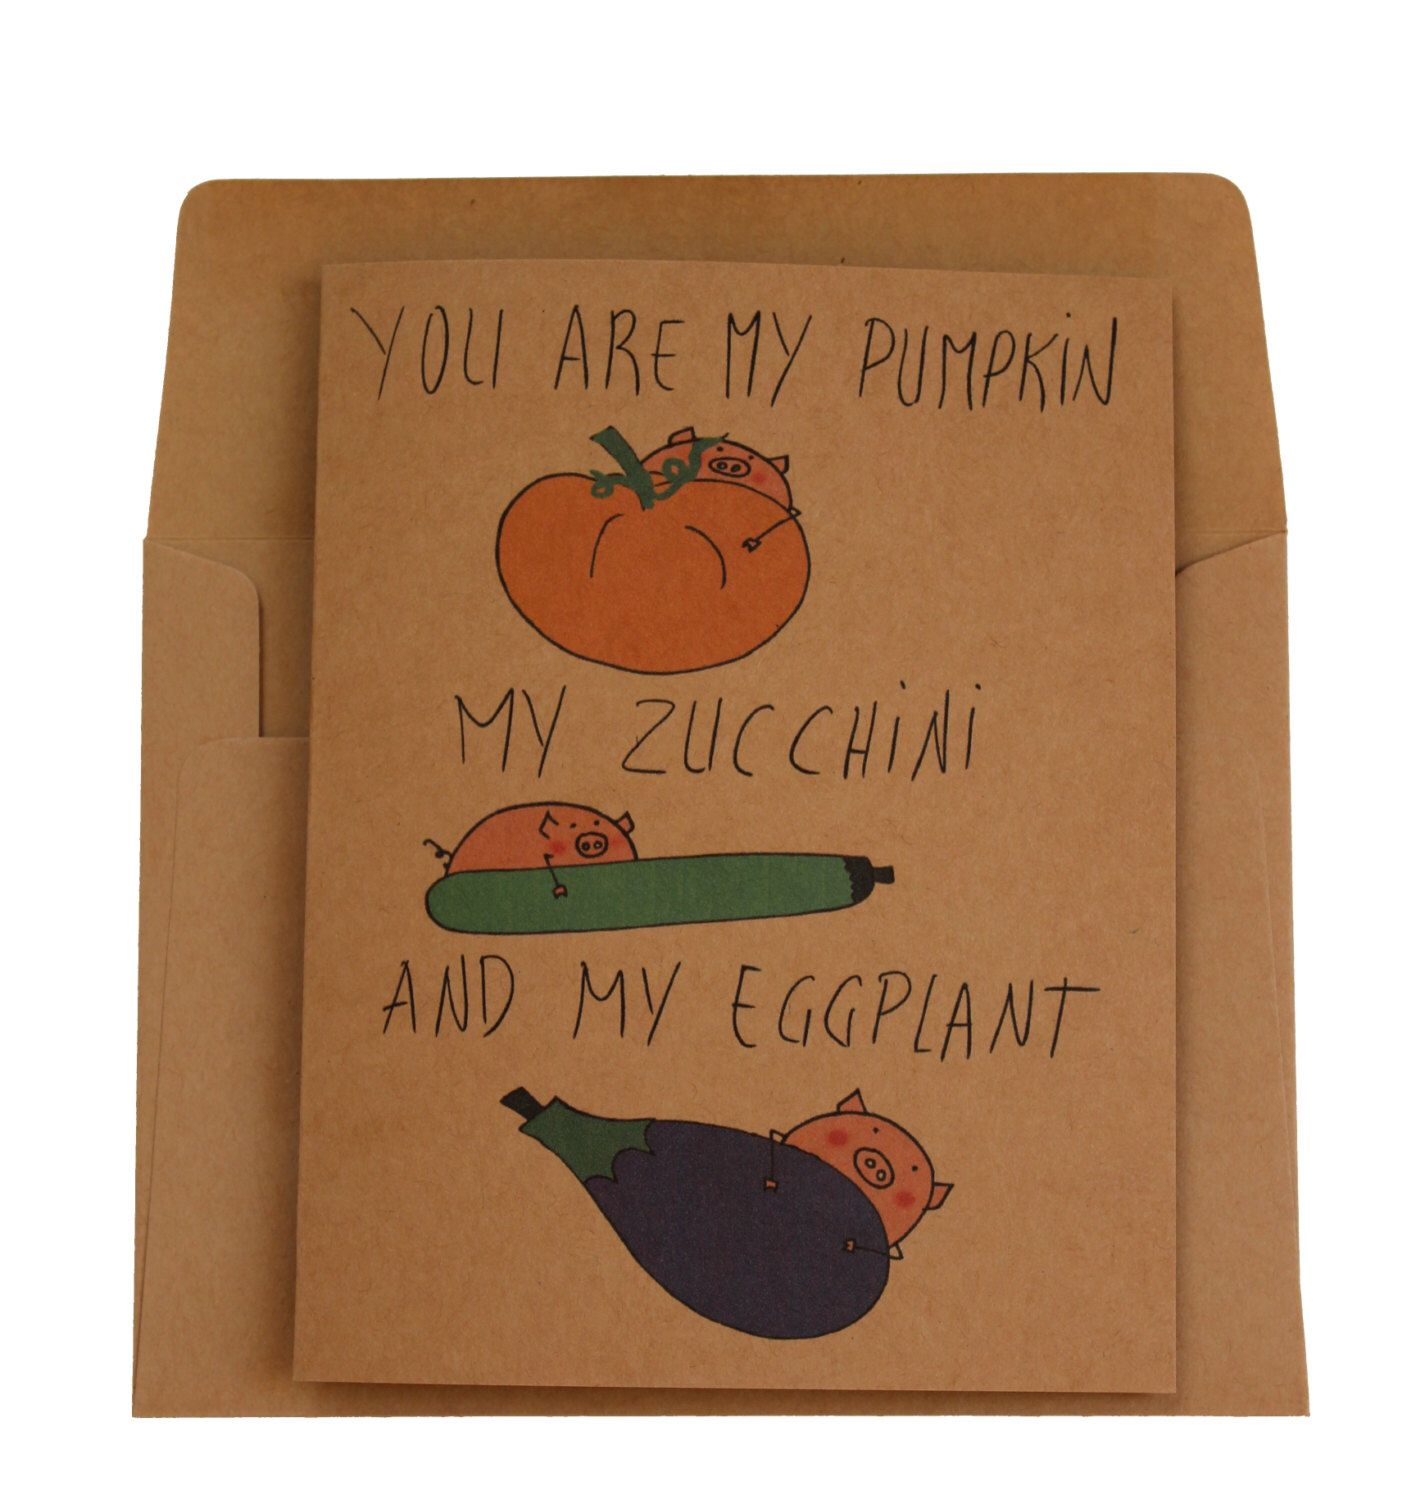 Pumpkin birthday card vegetarian girlfriend - Funny halloween card ...